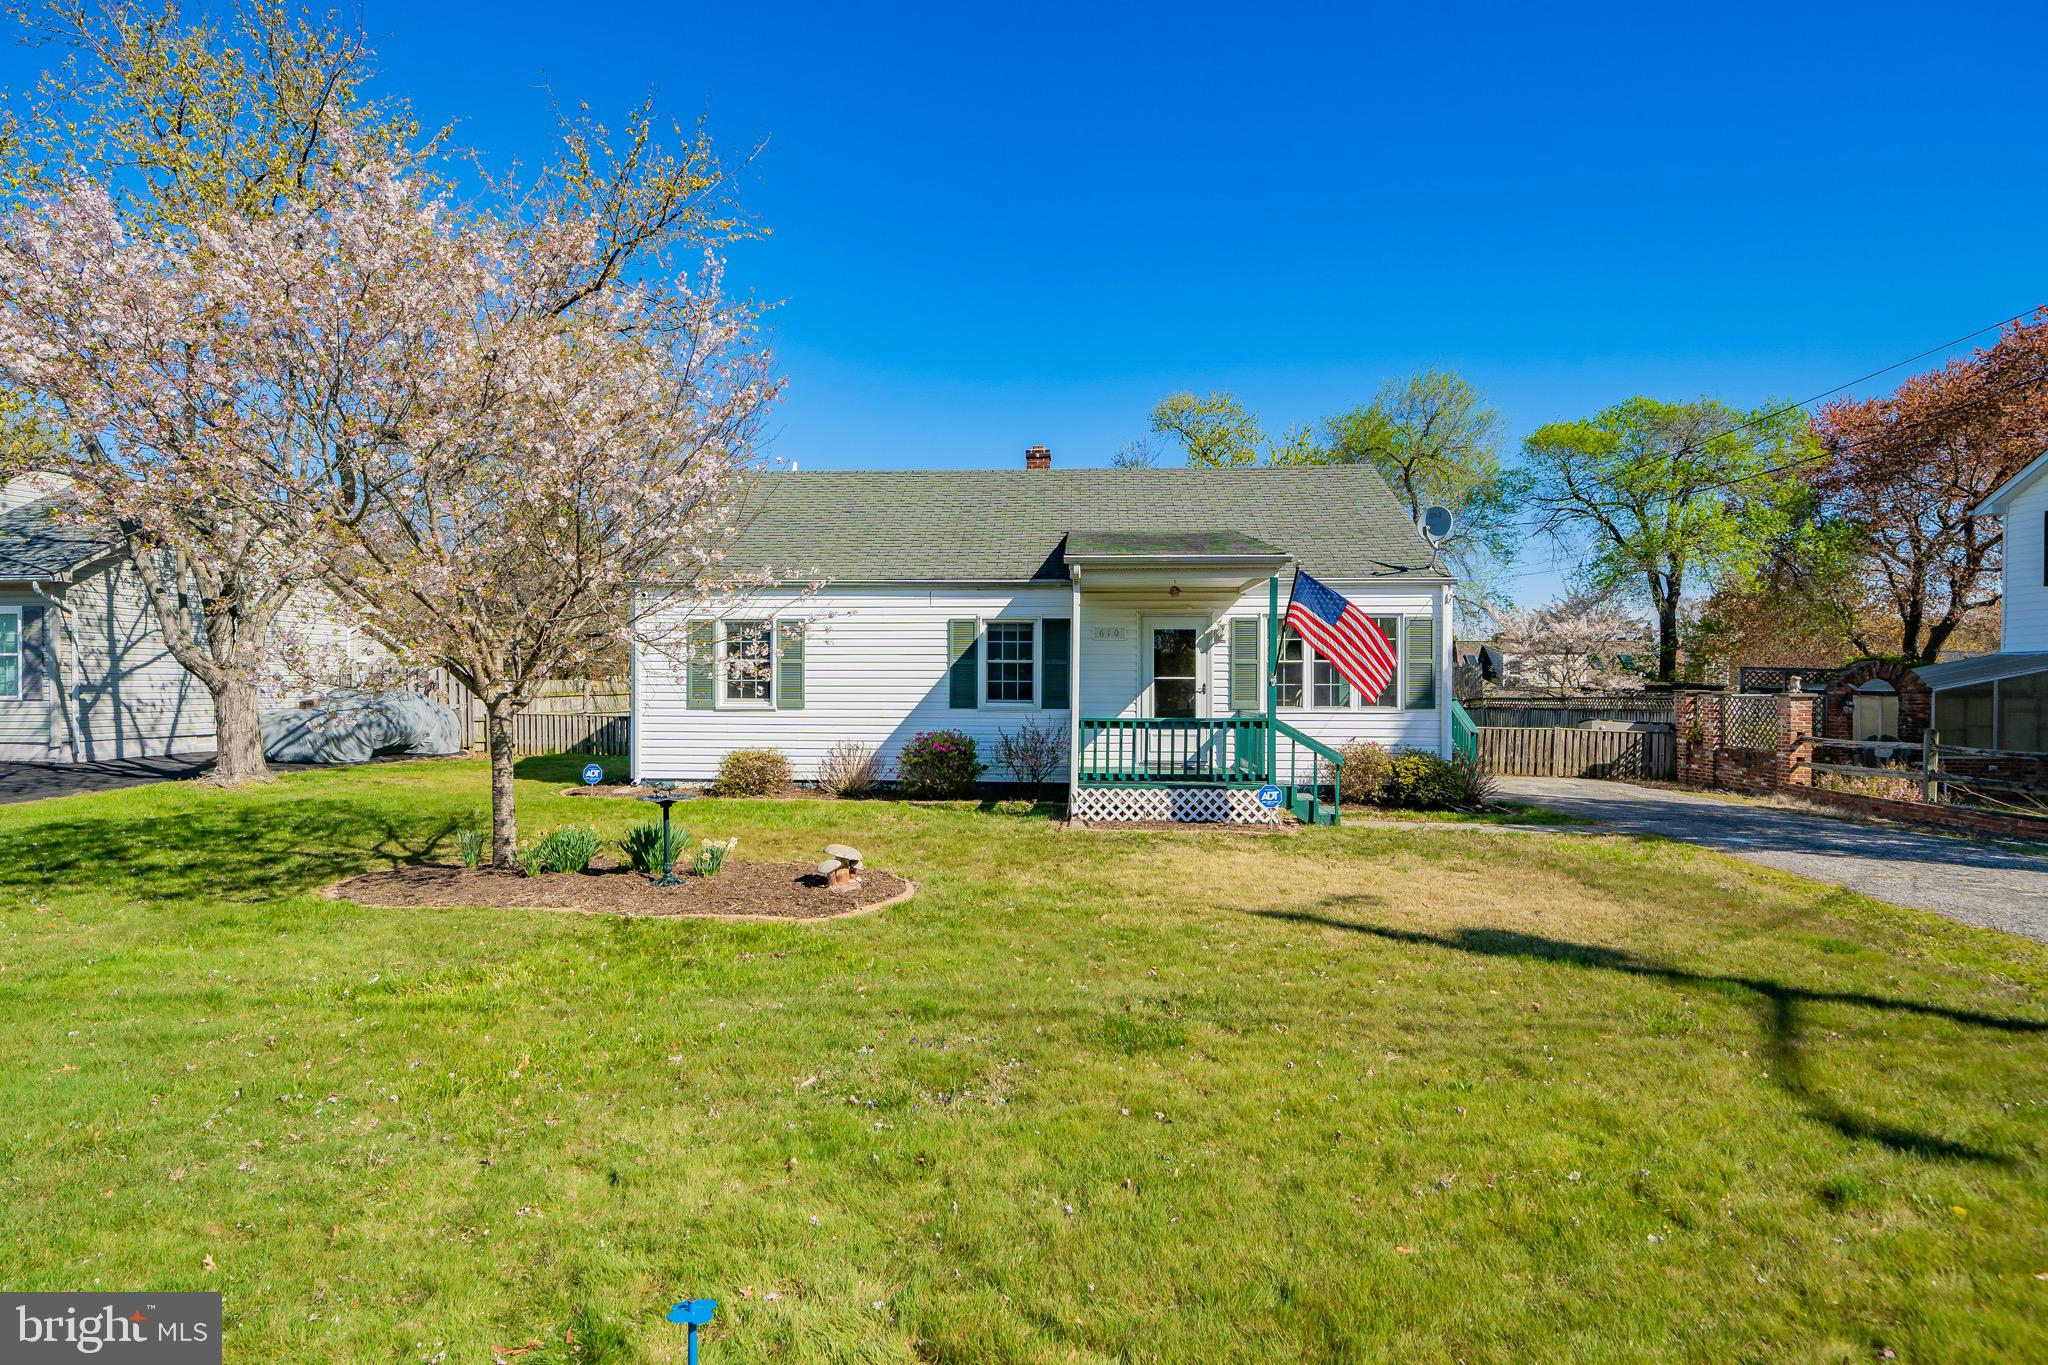 This charming 3 bedroom home is ready for its next owners! This home has been well maintained and fe